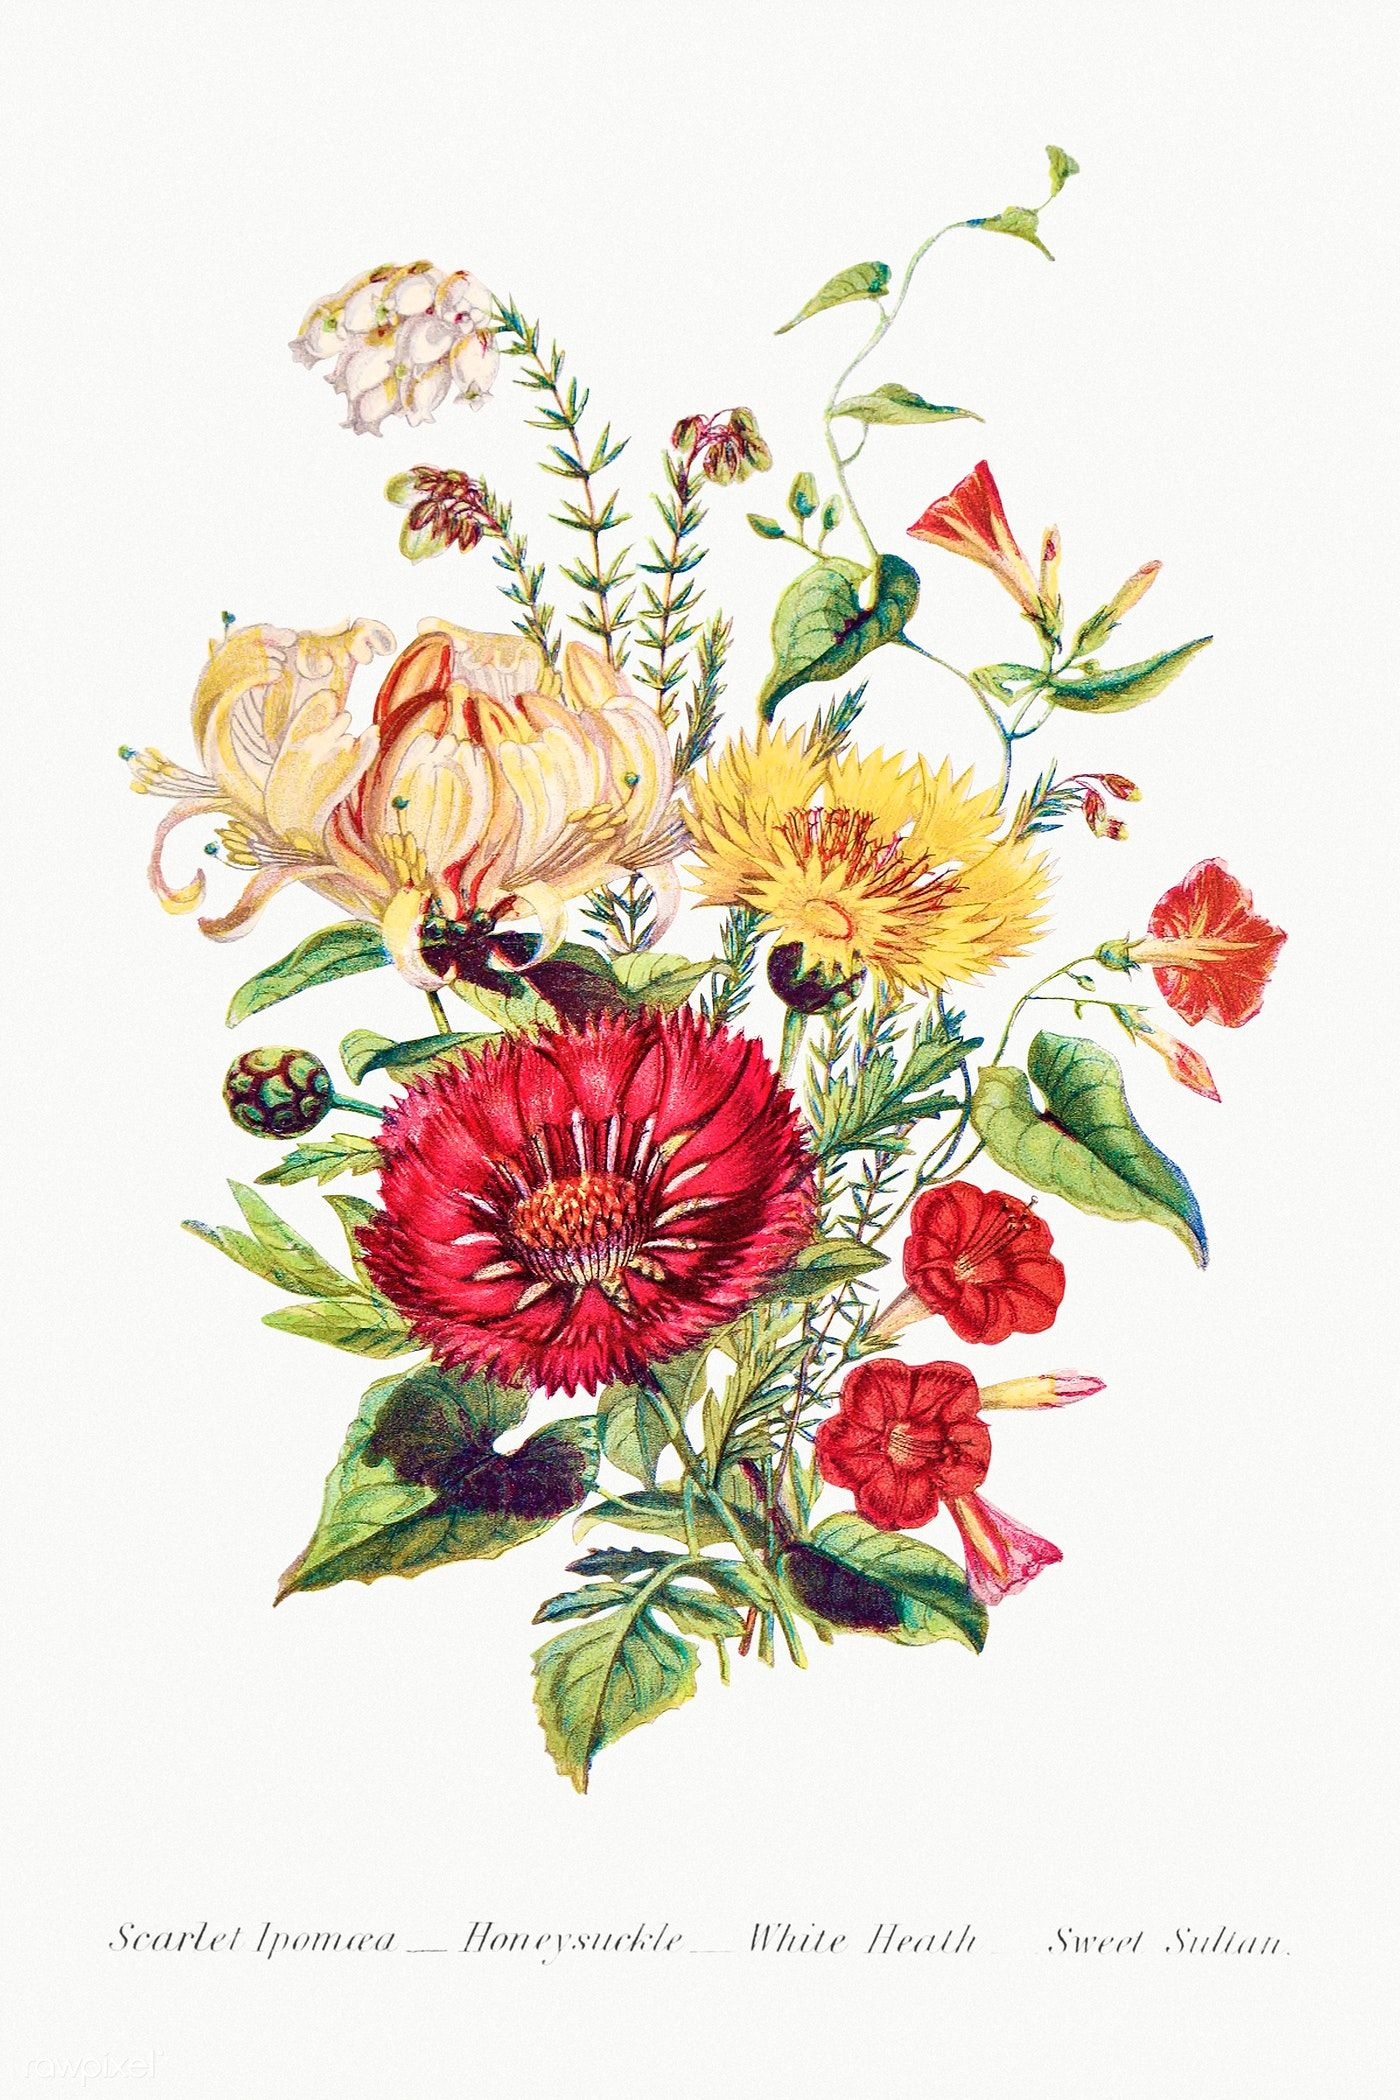 Scarlet Ipomoea Honeysuckle White Heath And Sweet Sulian From The Language Of Flowers Or Floral Emblems Of Thou In 2020 Flowers Bouquet Instant Art Vintage Flowers